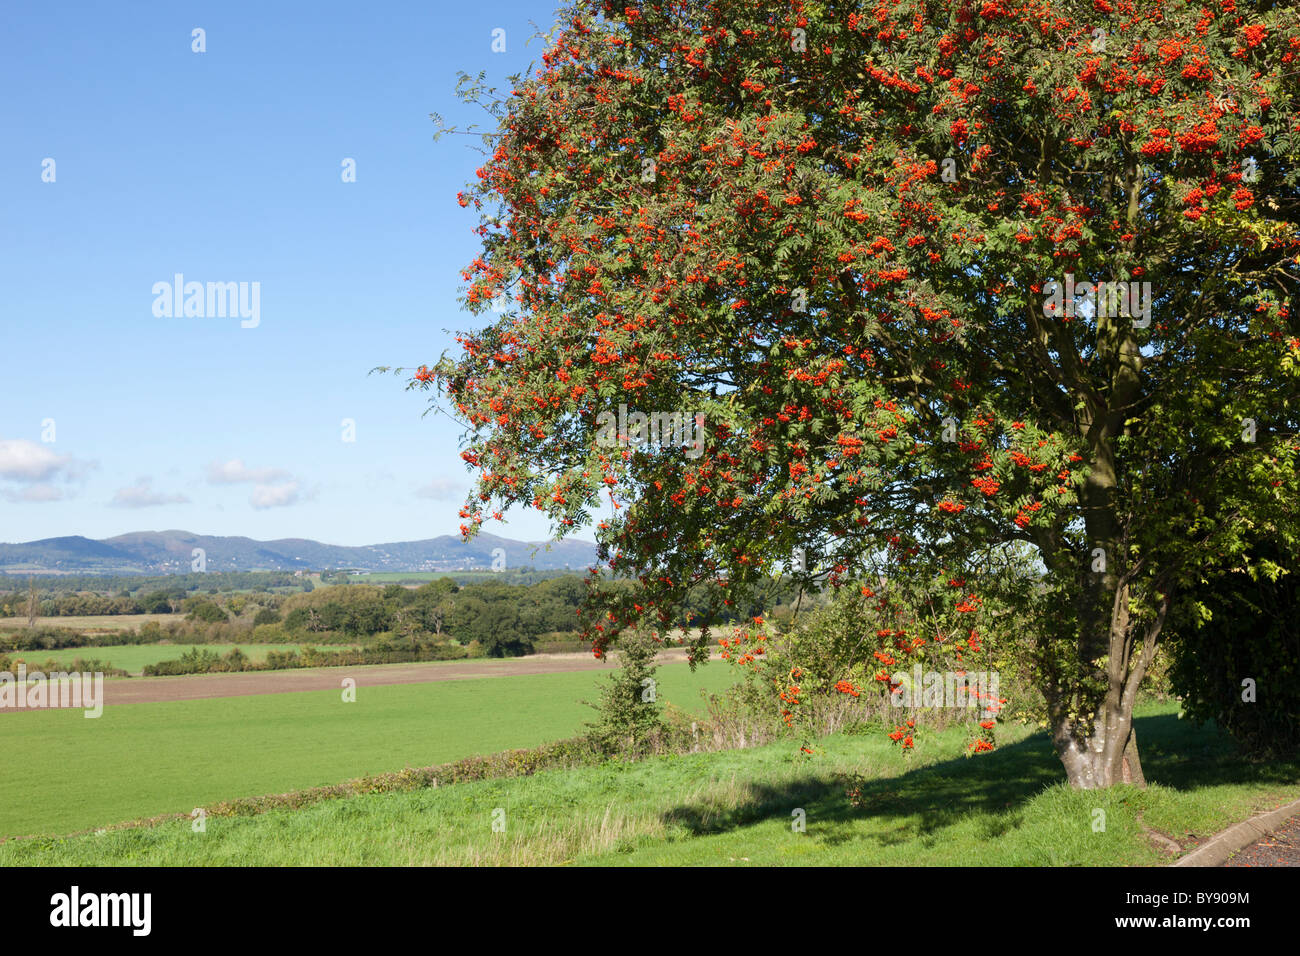 A rowan tree, mountain ash, at Longdon, Worcestershire. The Malvern Hills are in the background. - Stock Image